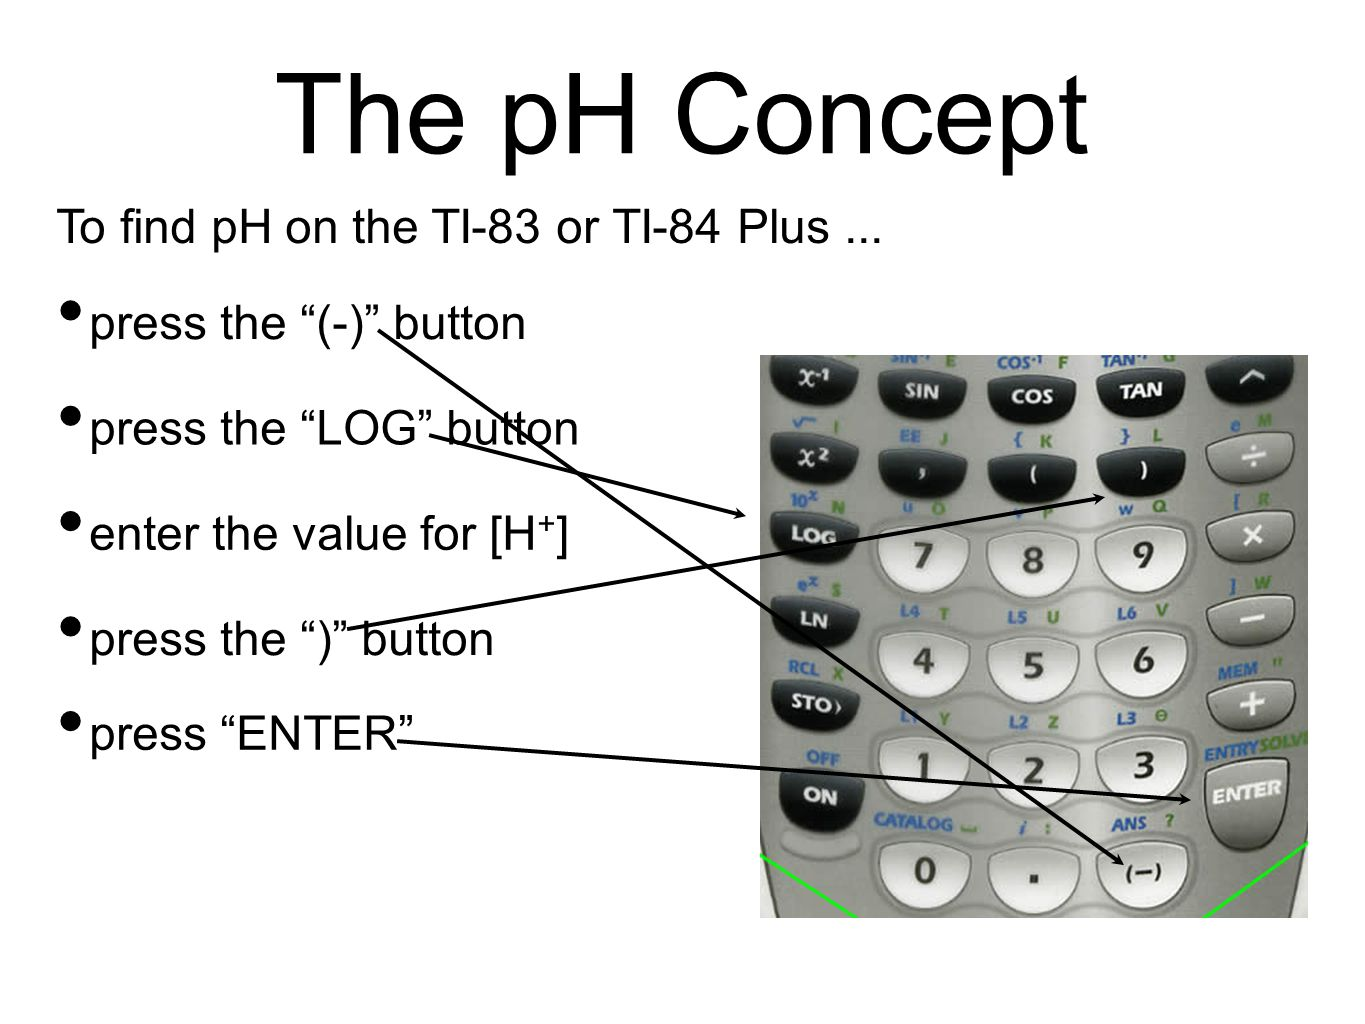 The pH Concept To find pH on the TI-83 or TI-84 Plus...